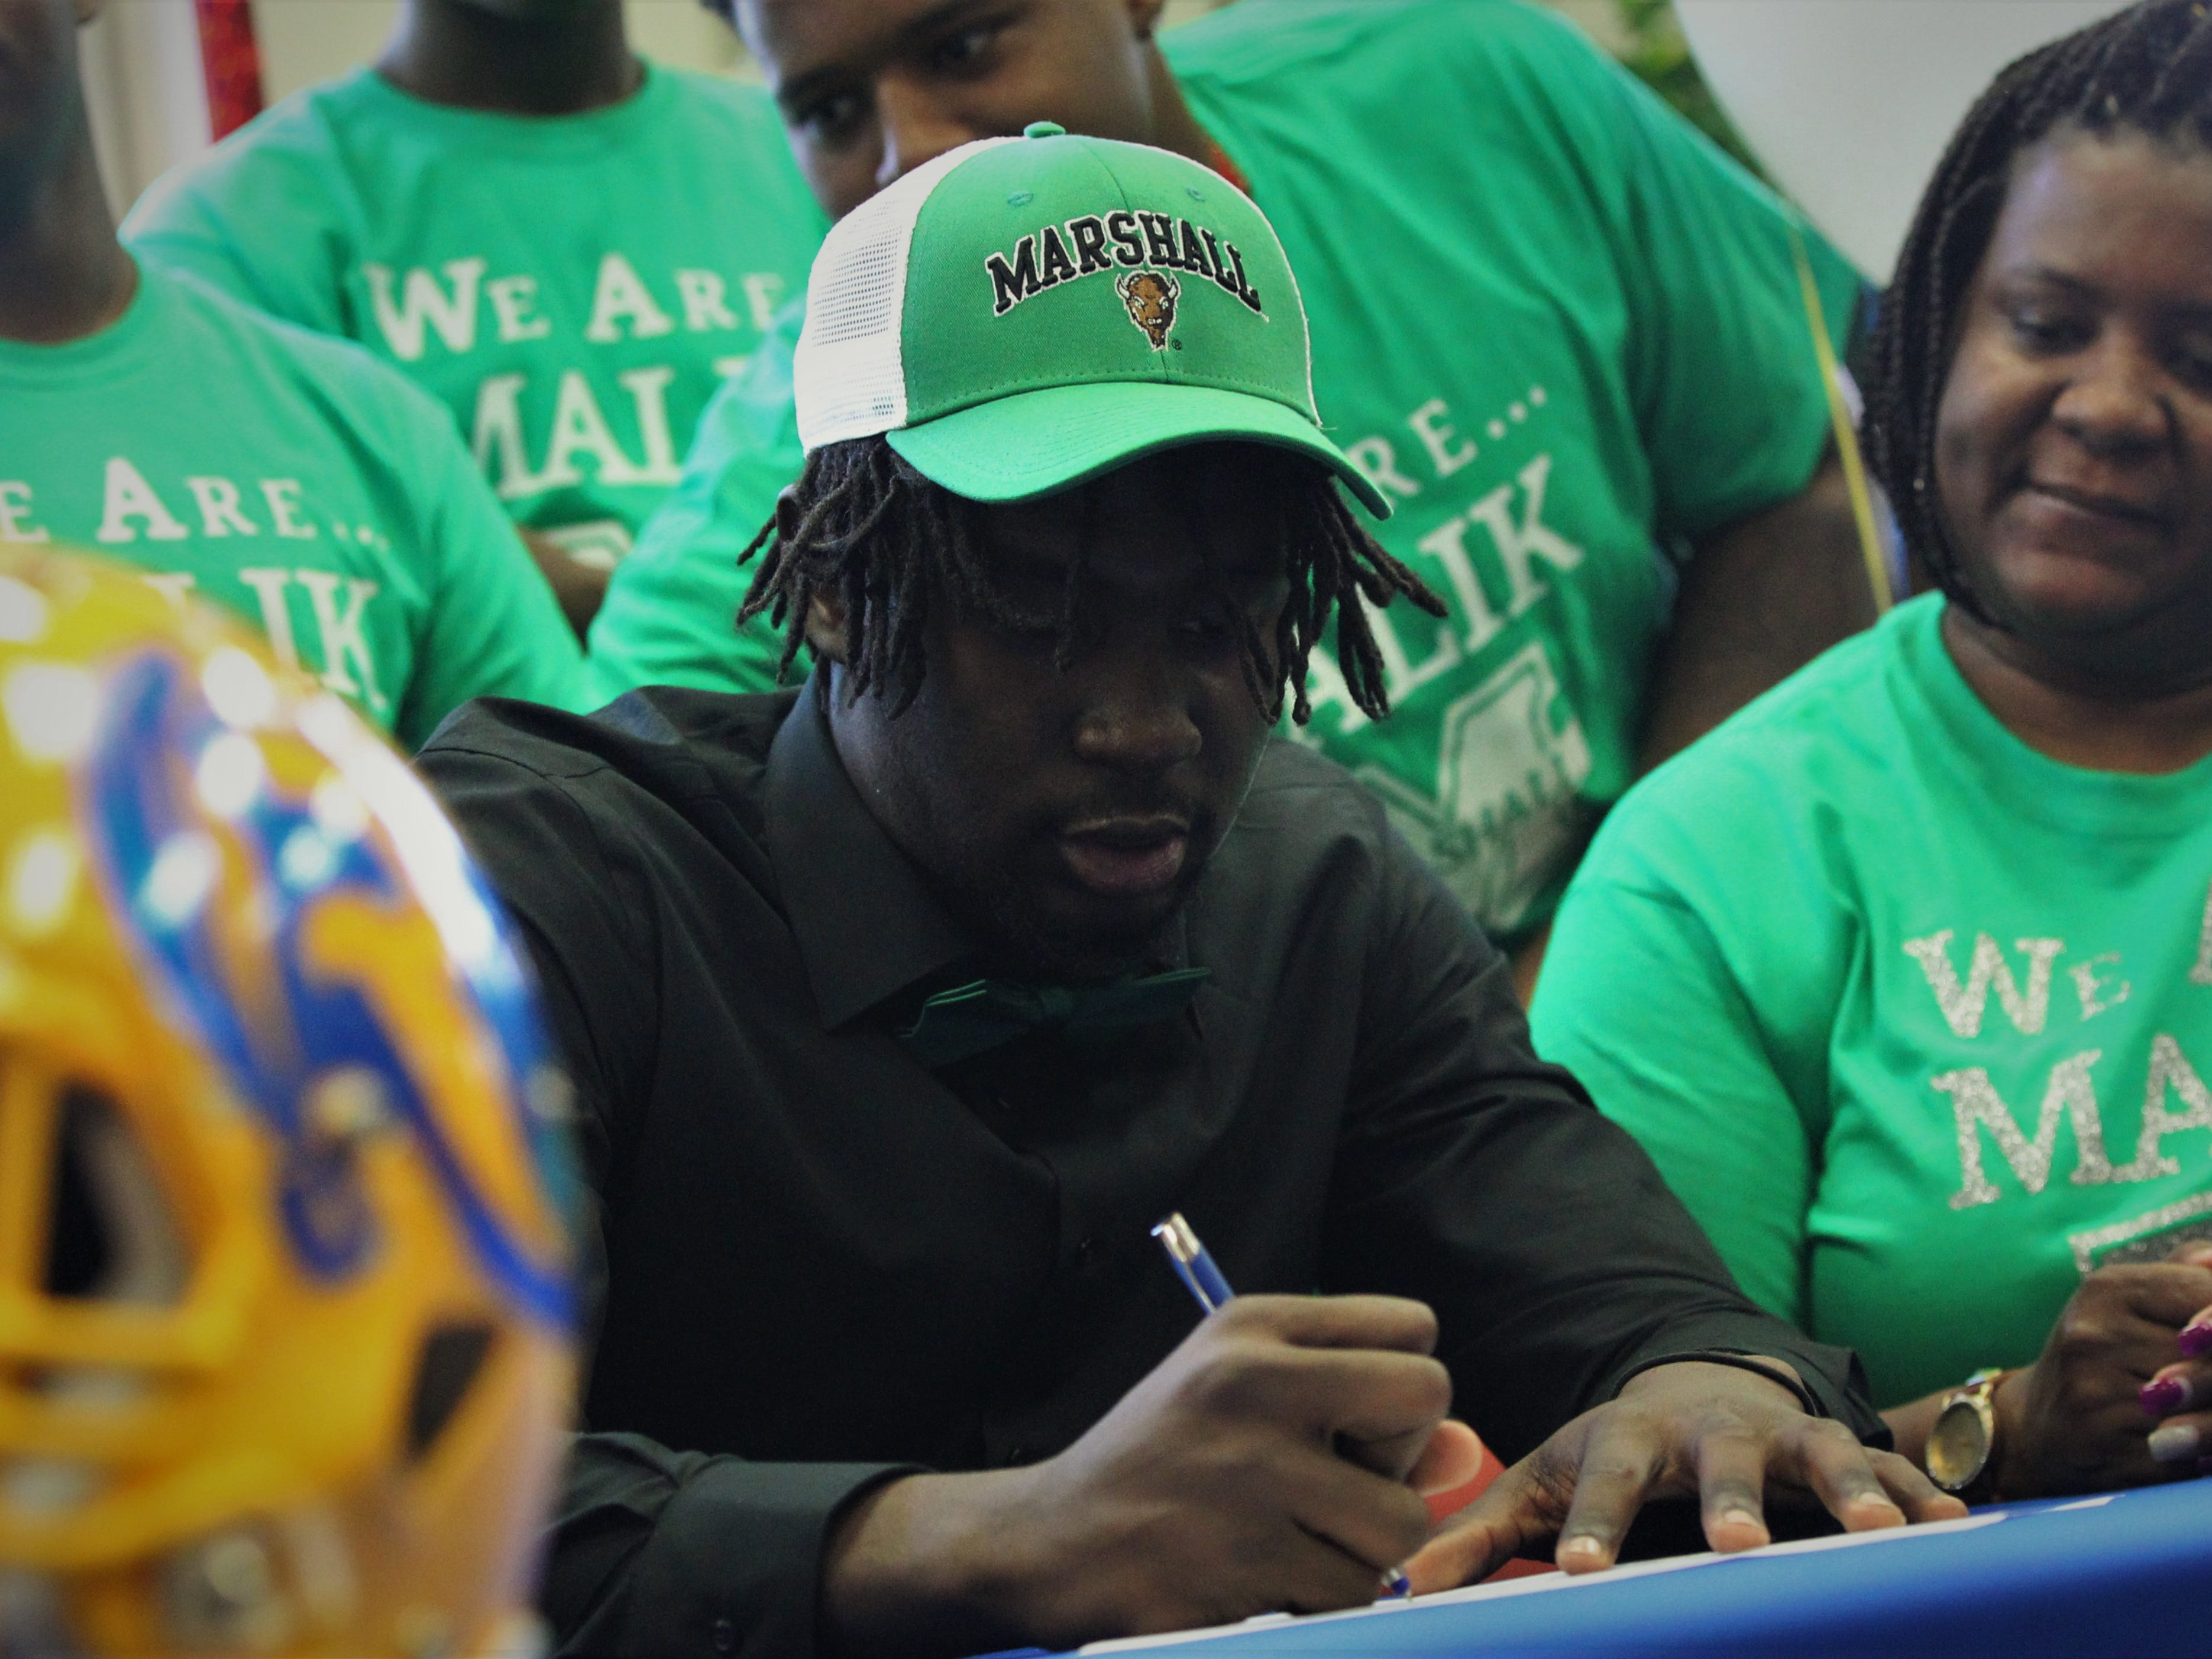 Rickards defensive end Malik Darisaw signed with Marshall during signing ceremonies on National Signing Day, Feb. 6, 2019.